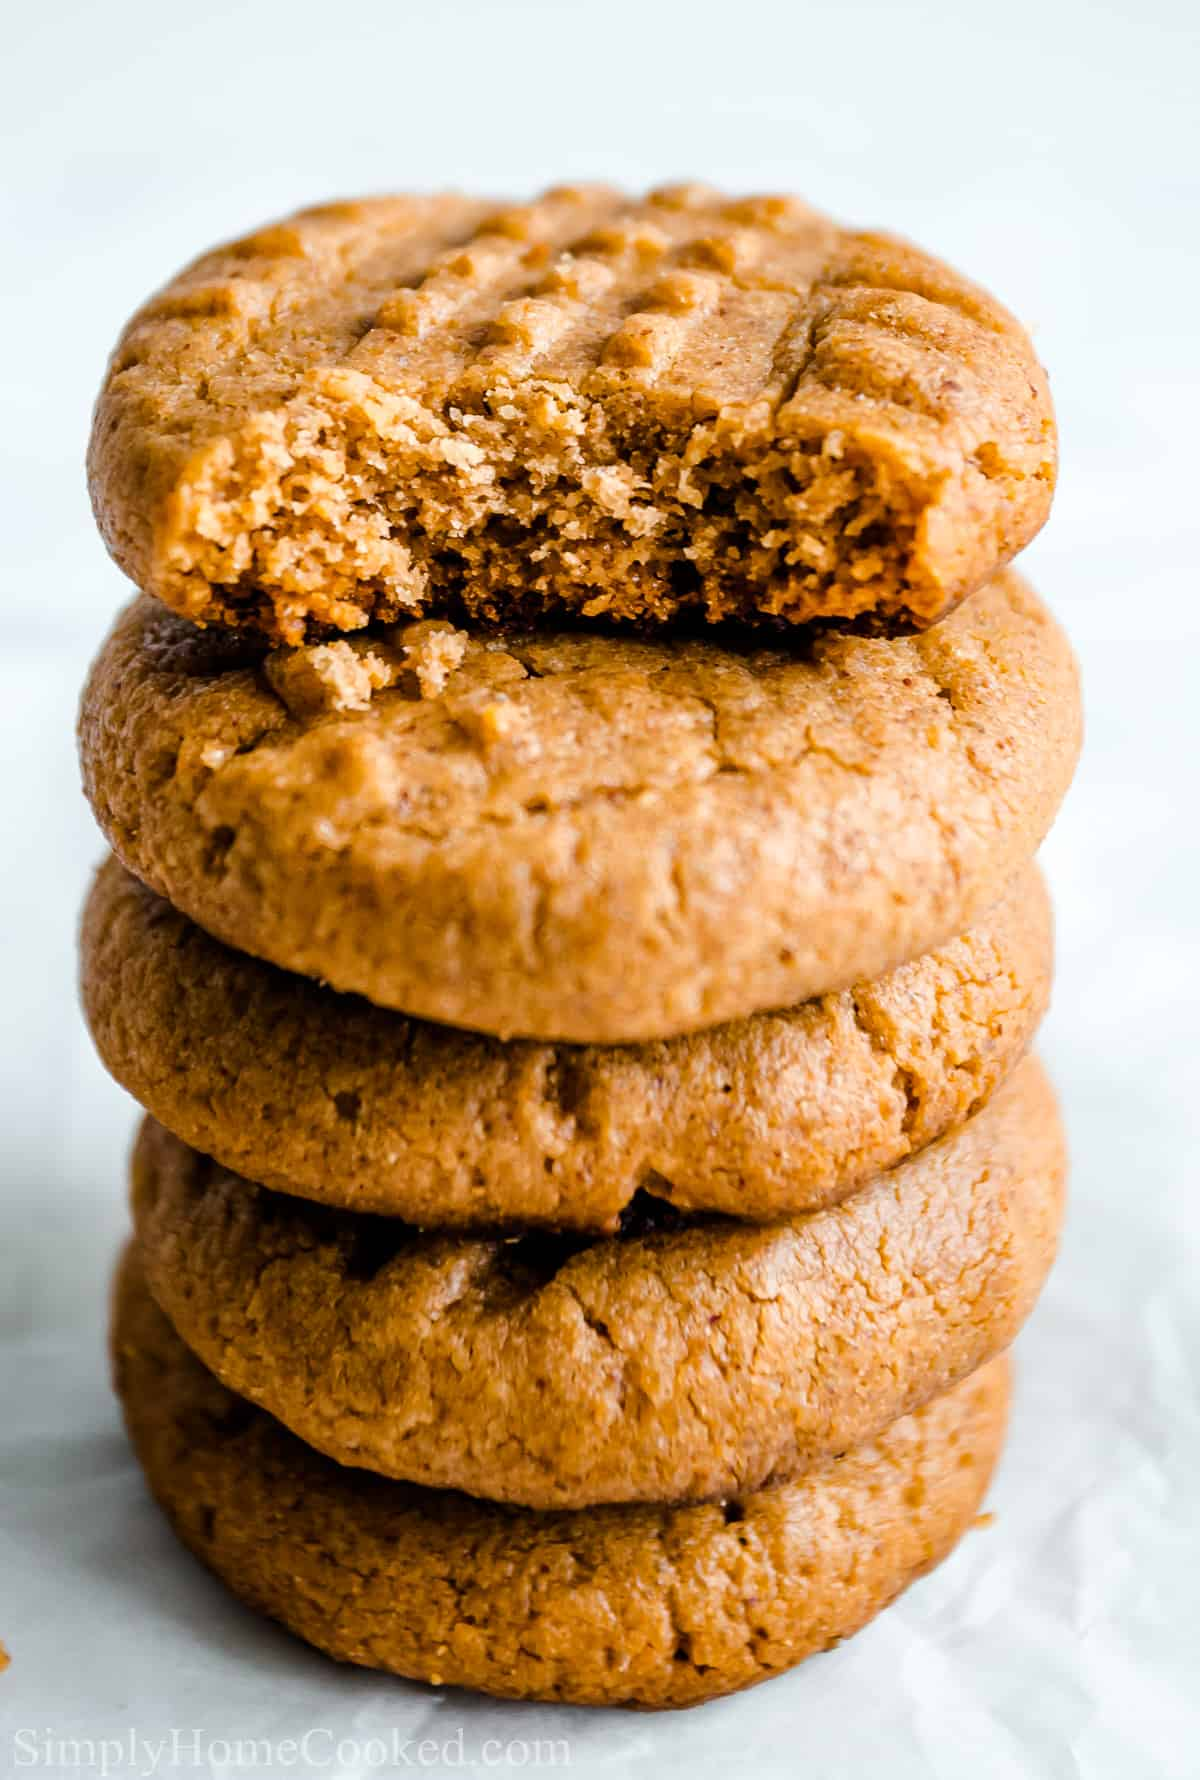 Close up of a stack of Easy Keto Peanut Butter Cookies, the top one missing a bite.